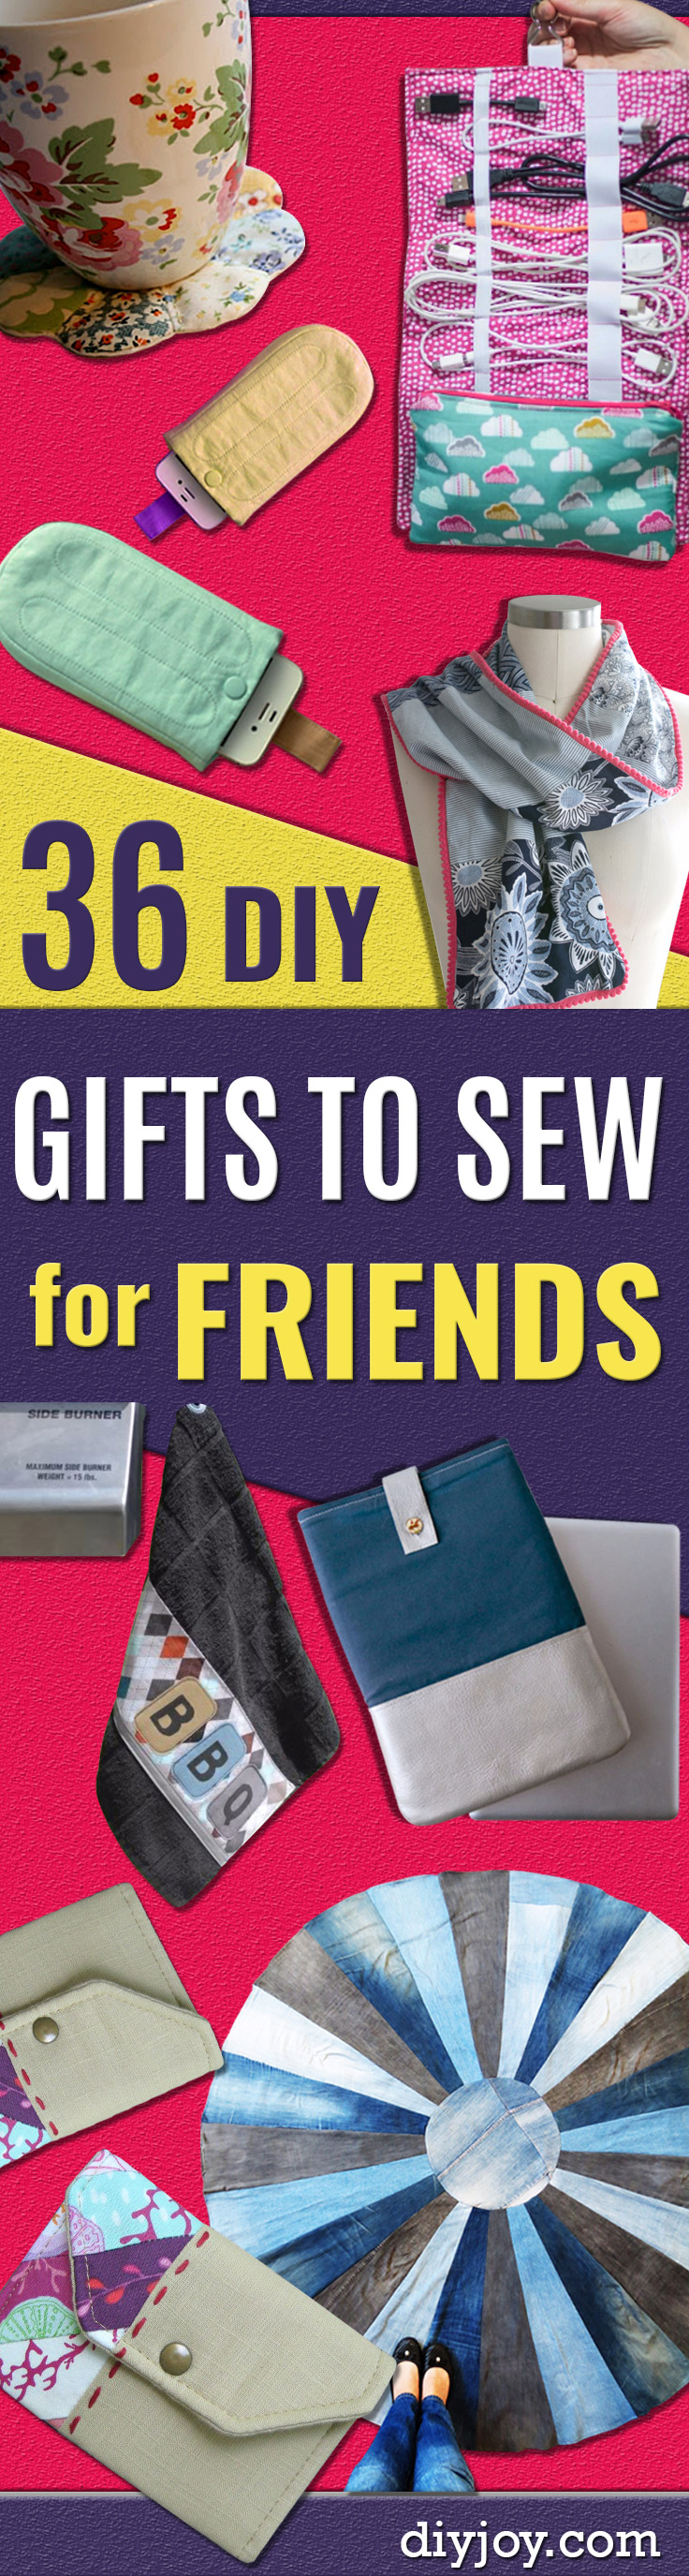 36 creative diy gifts to sew for friends for Craft gifts for friends